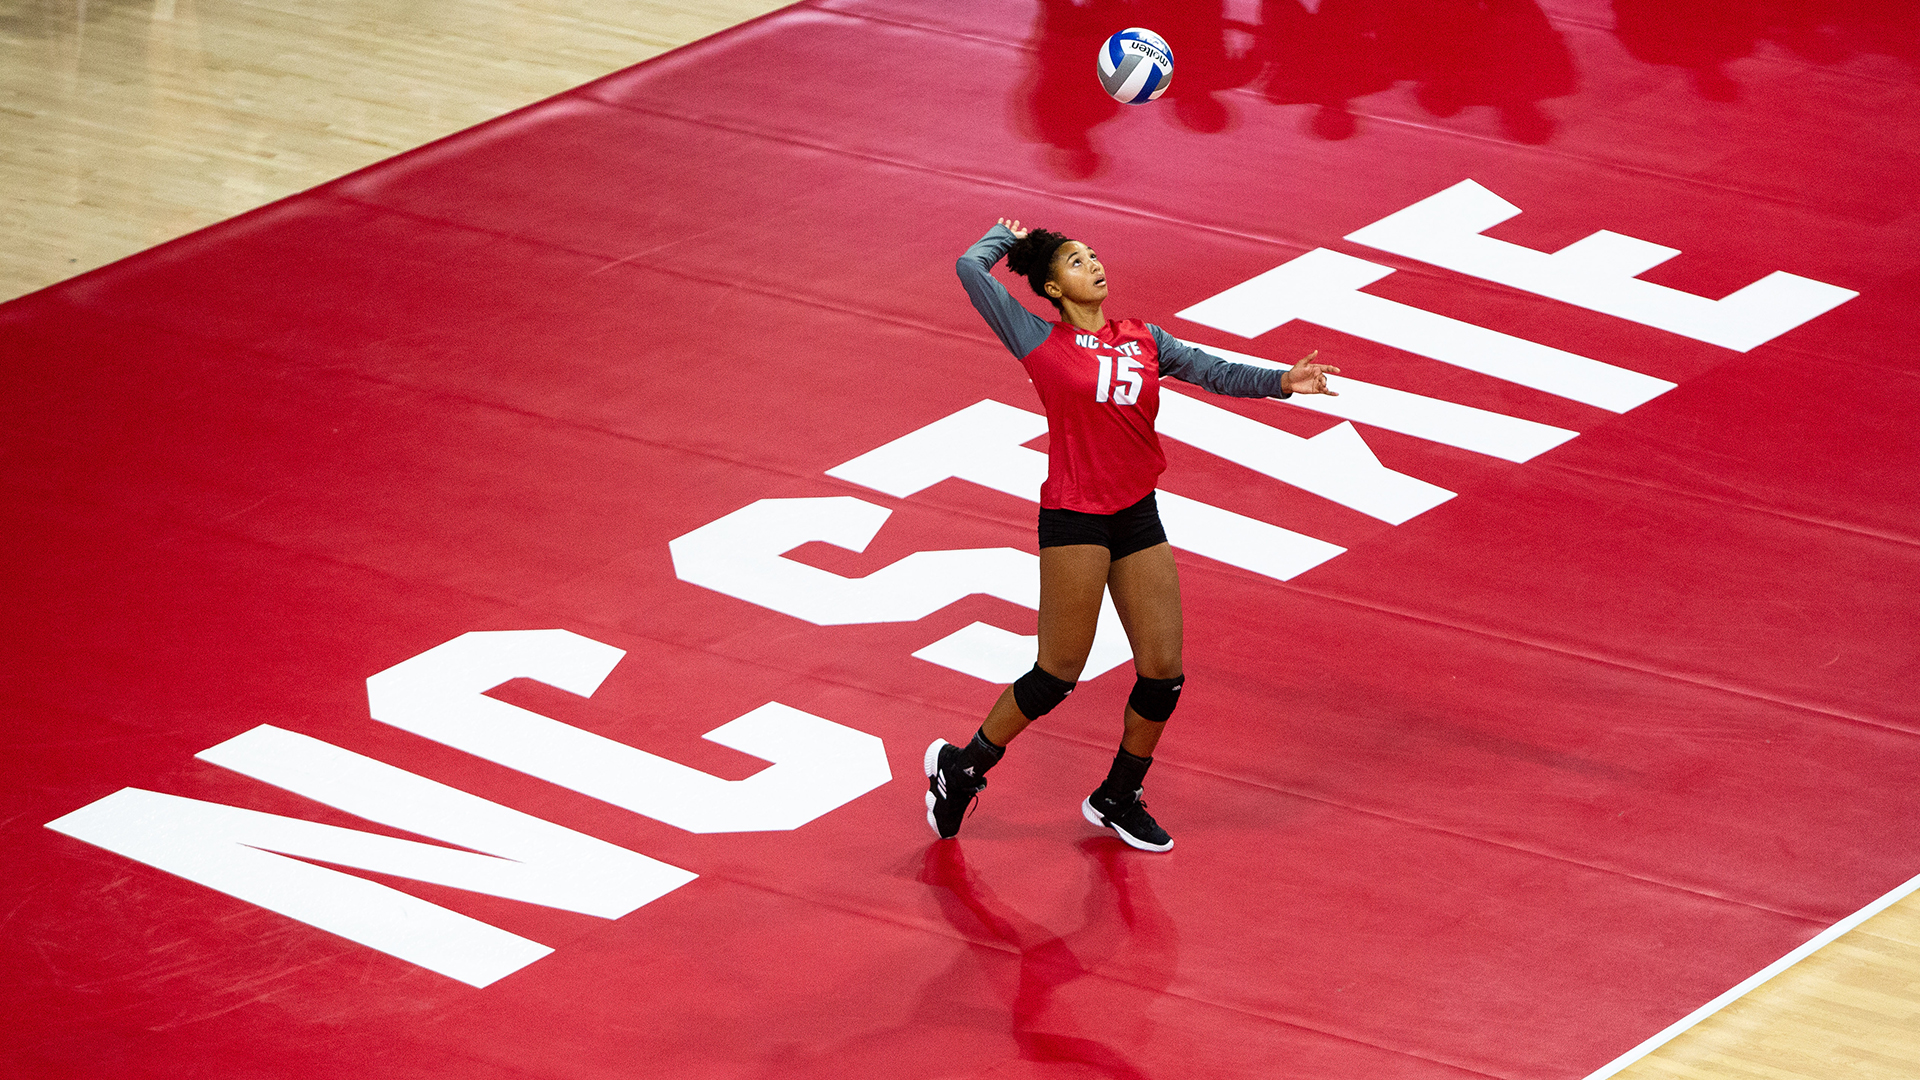 Ncsu Spring 2019 Calendar NC State Volleyball Announces Spring Schedule   NC State